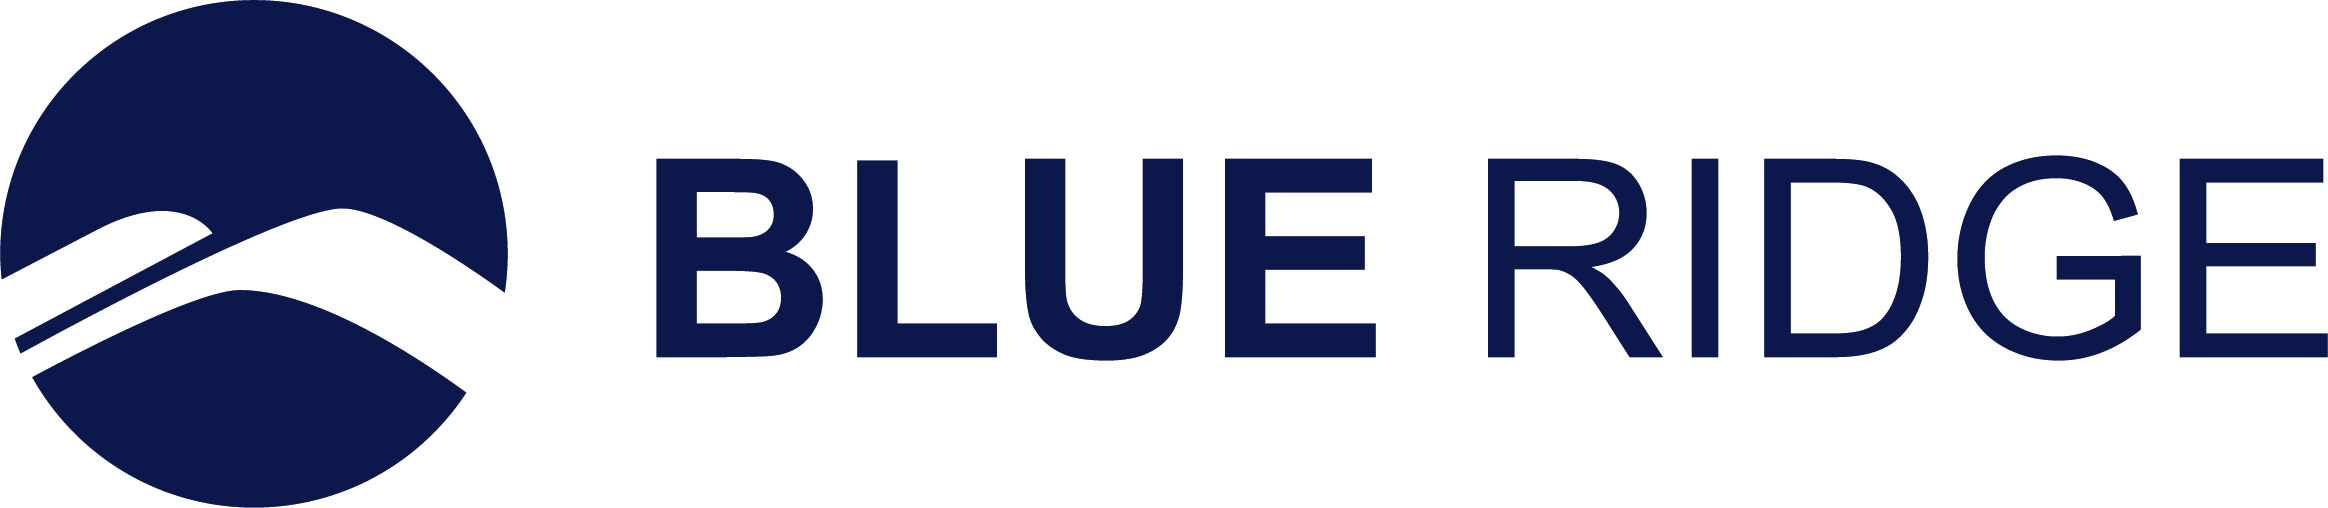 AS Sigurd Hesselberg Goes Live with Blue Ridge Integrated Supply Chain Planning and Pricing Optimization Solution, Sees Rapid Productivity